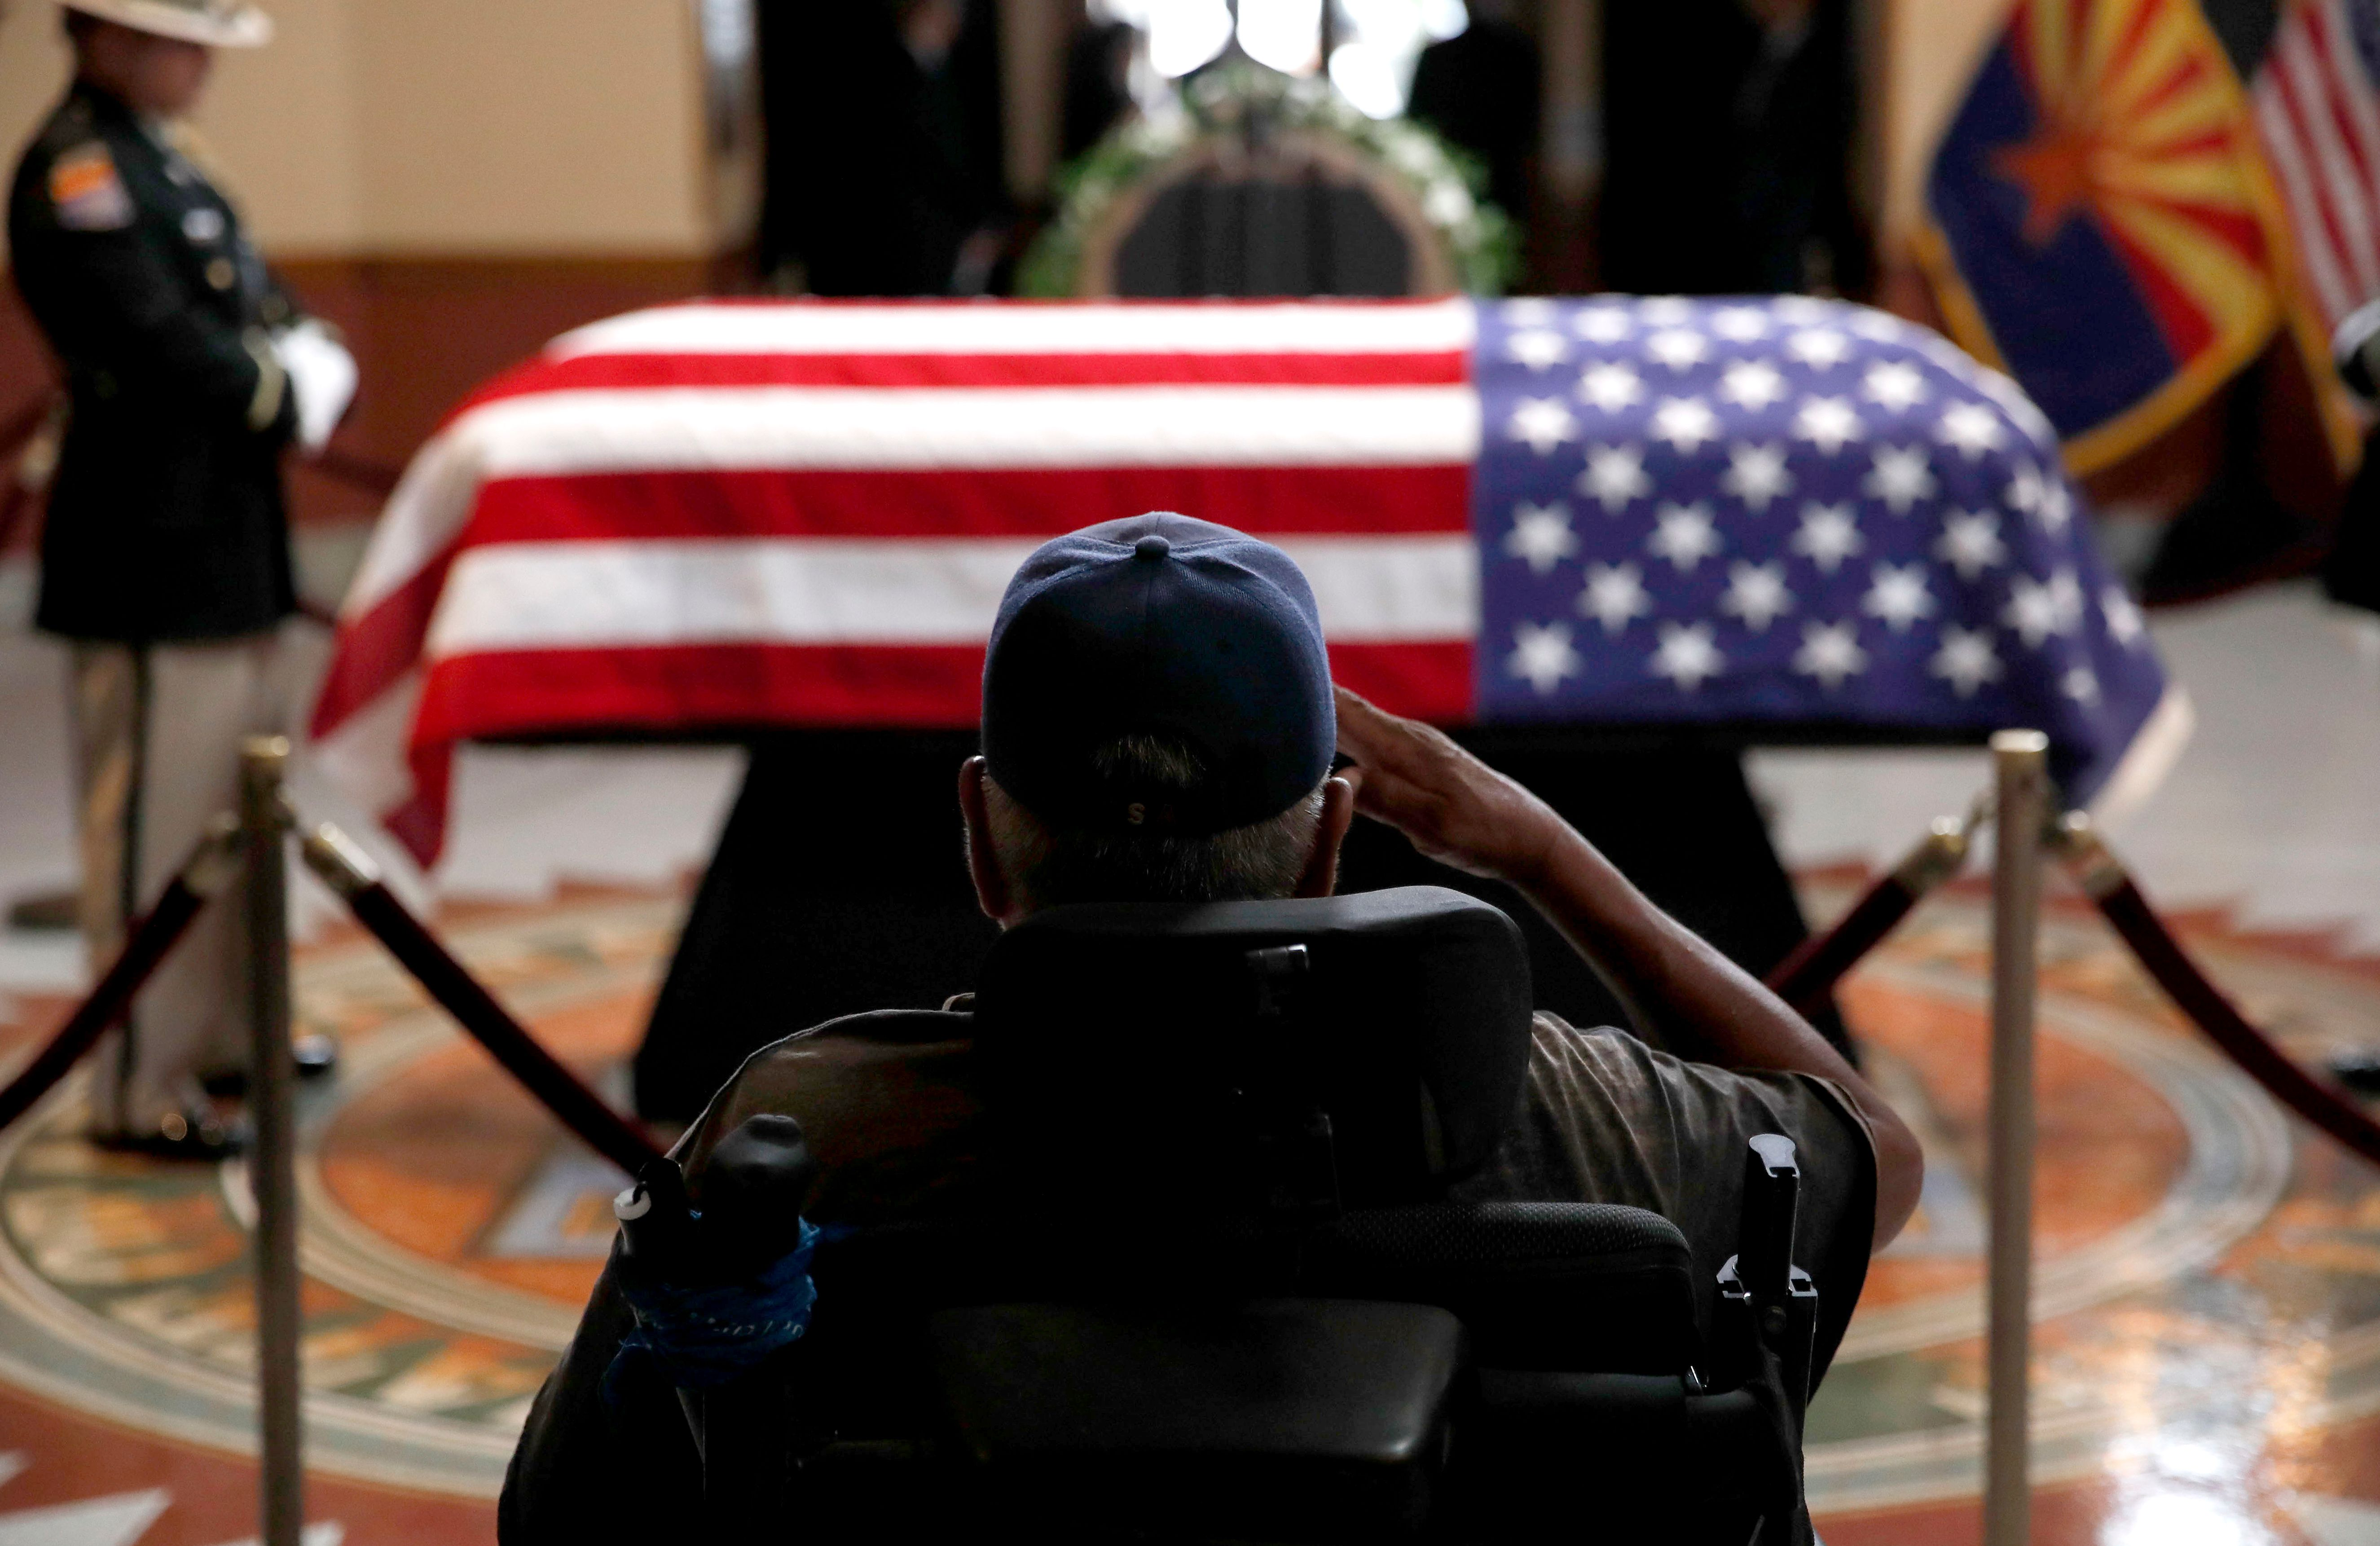 A former serviceman salutes the casket during a memorial service for US Sen. John McCain at the Arizona Capitol on Aug. 29, 2018, in Phoenix.